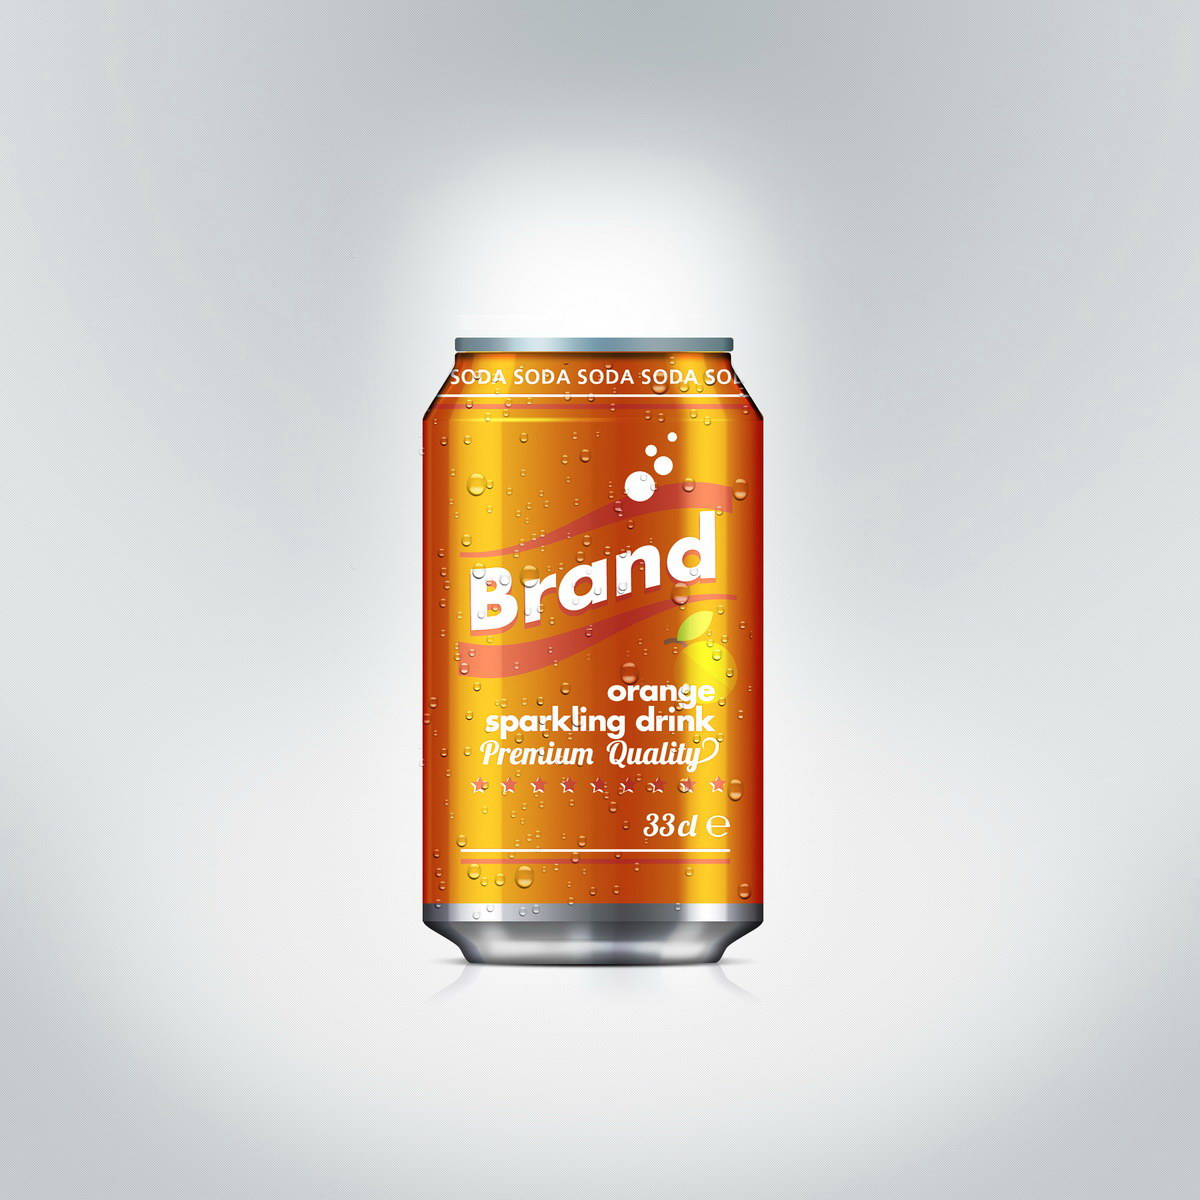 Sparkling orange drink